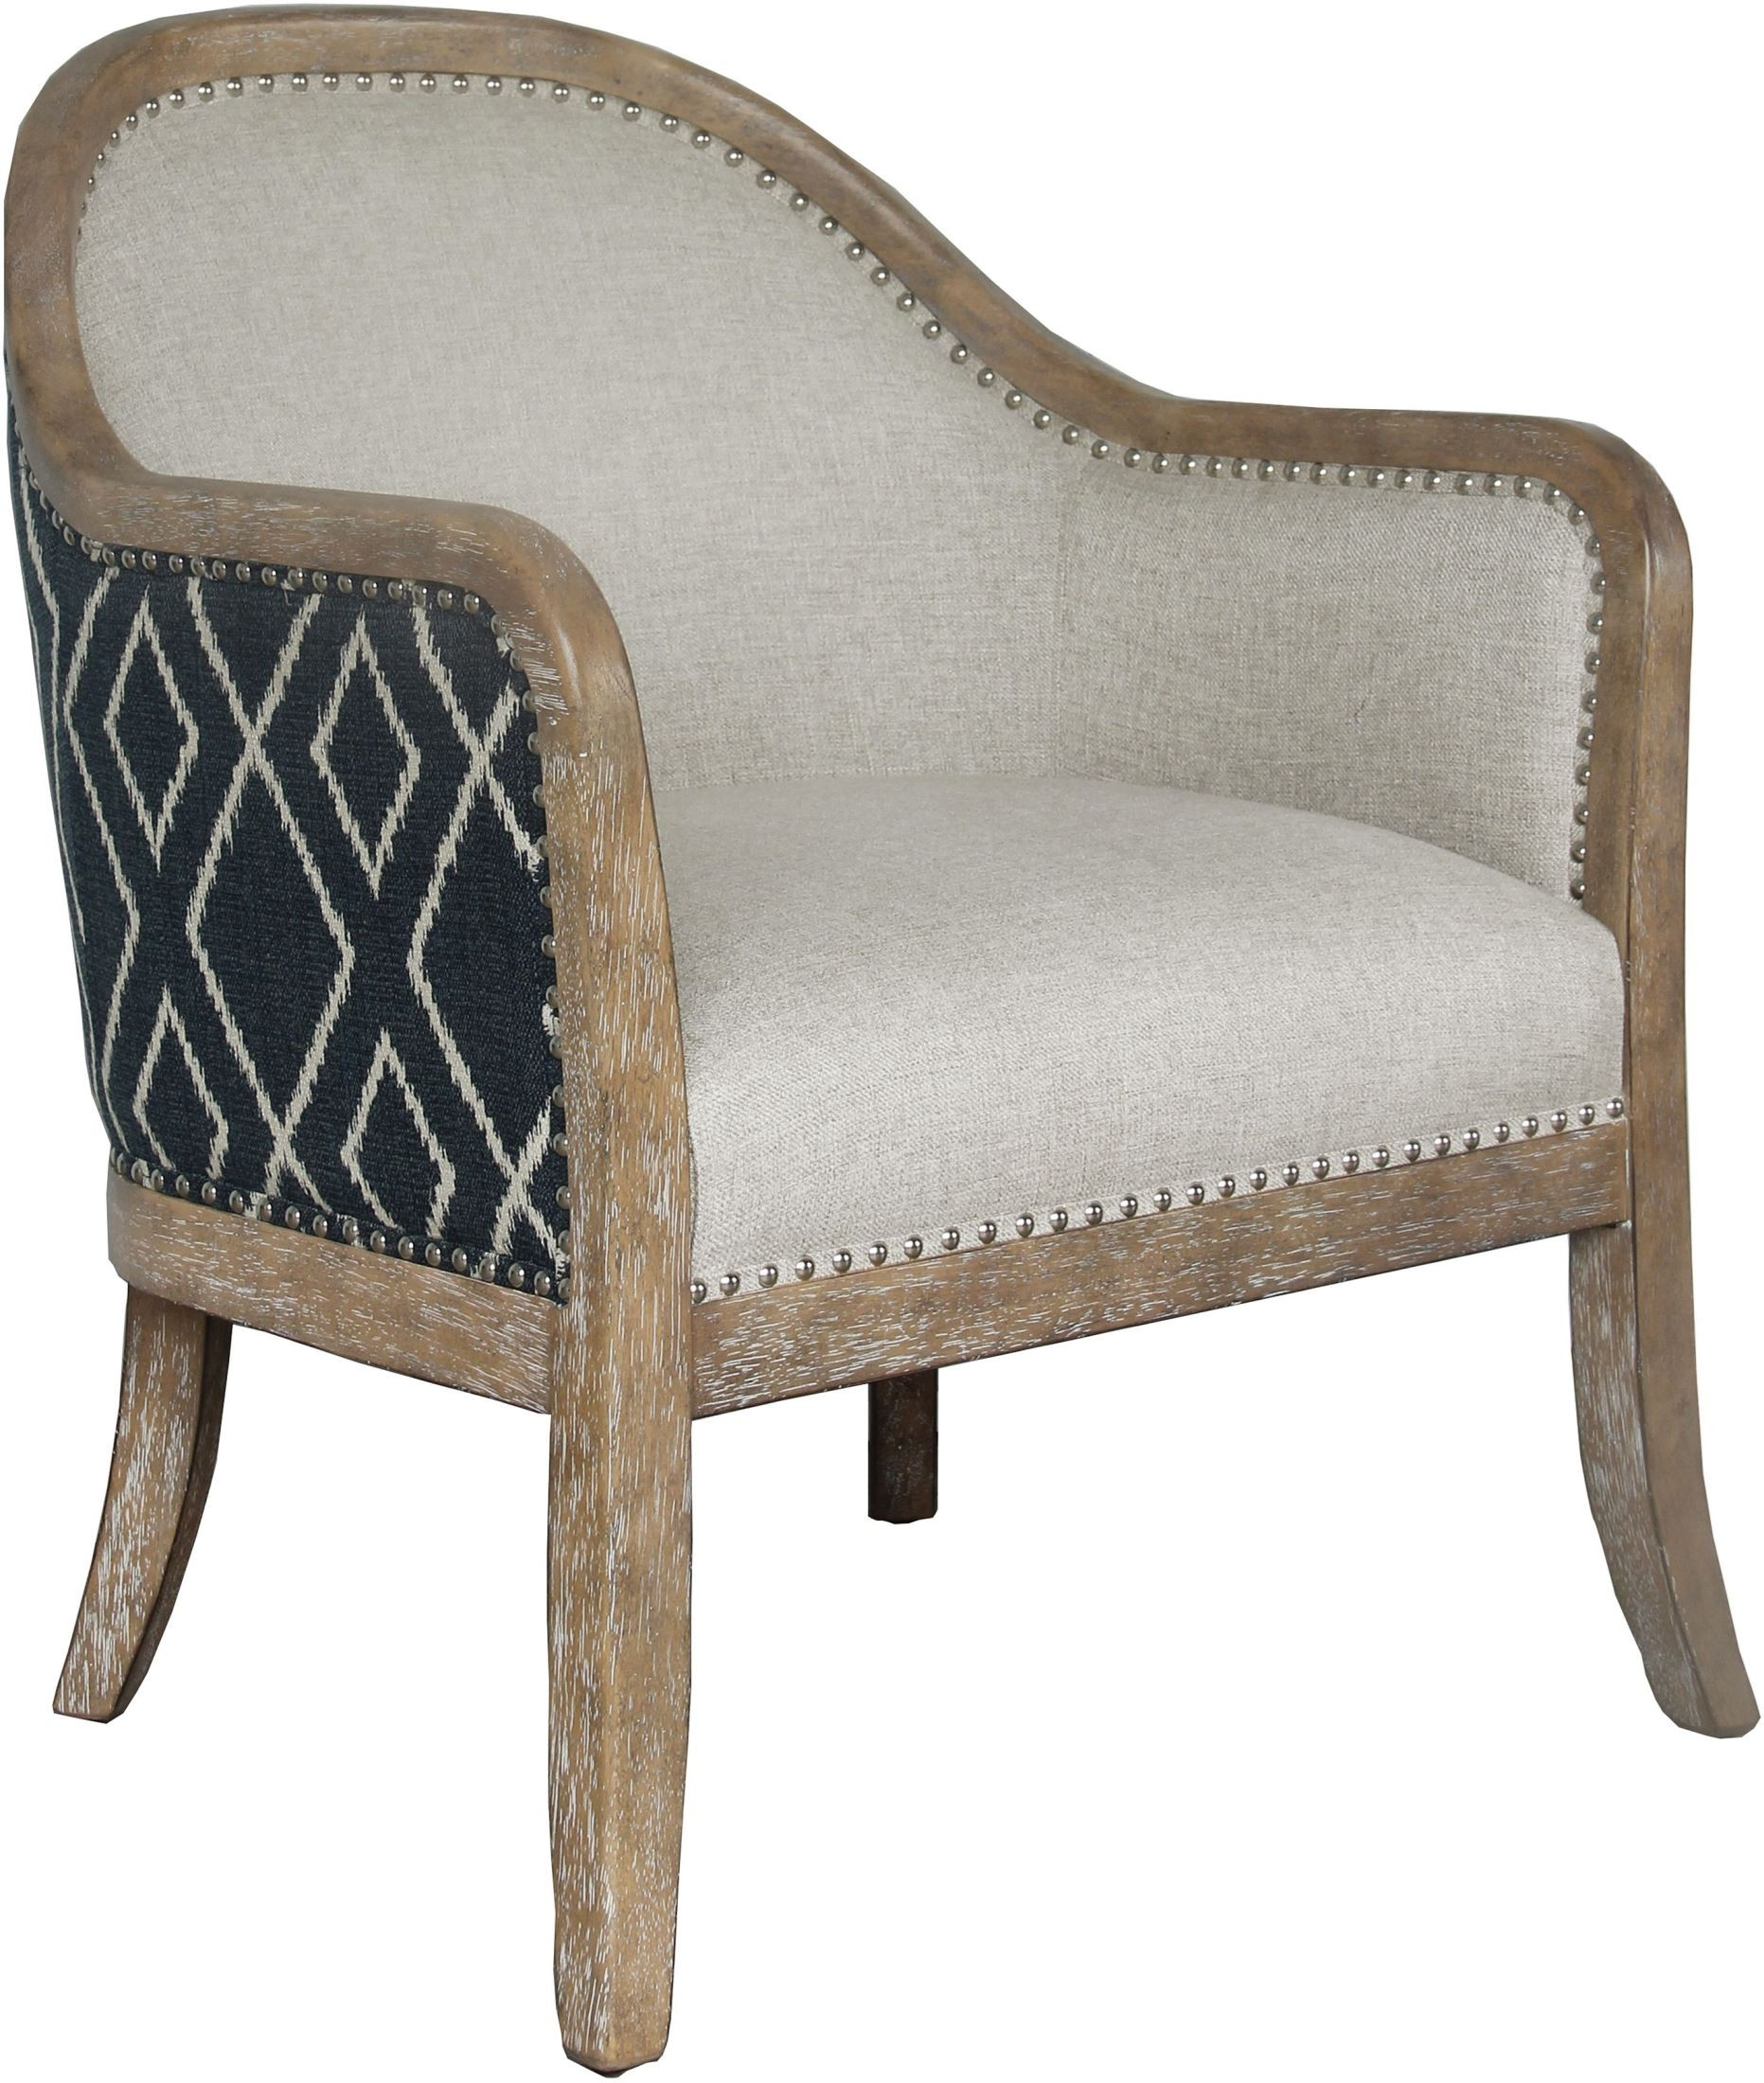 Small Accent Couch: Small Space Two-Tone Upholstered Accent Chair From Pulaski